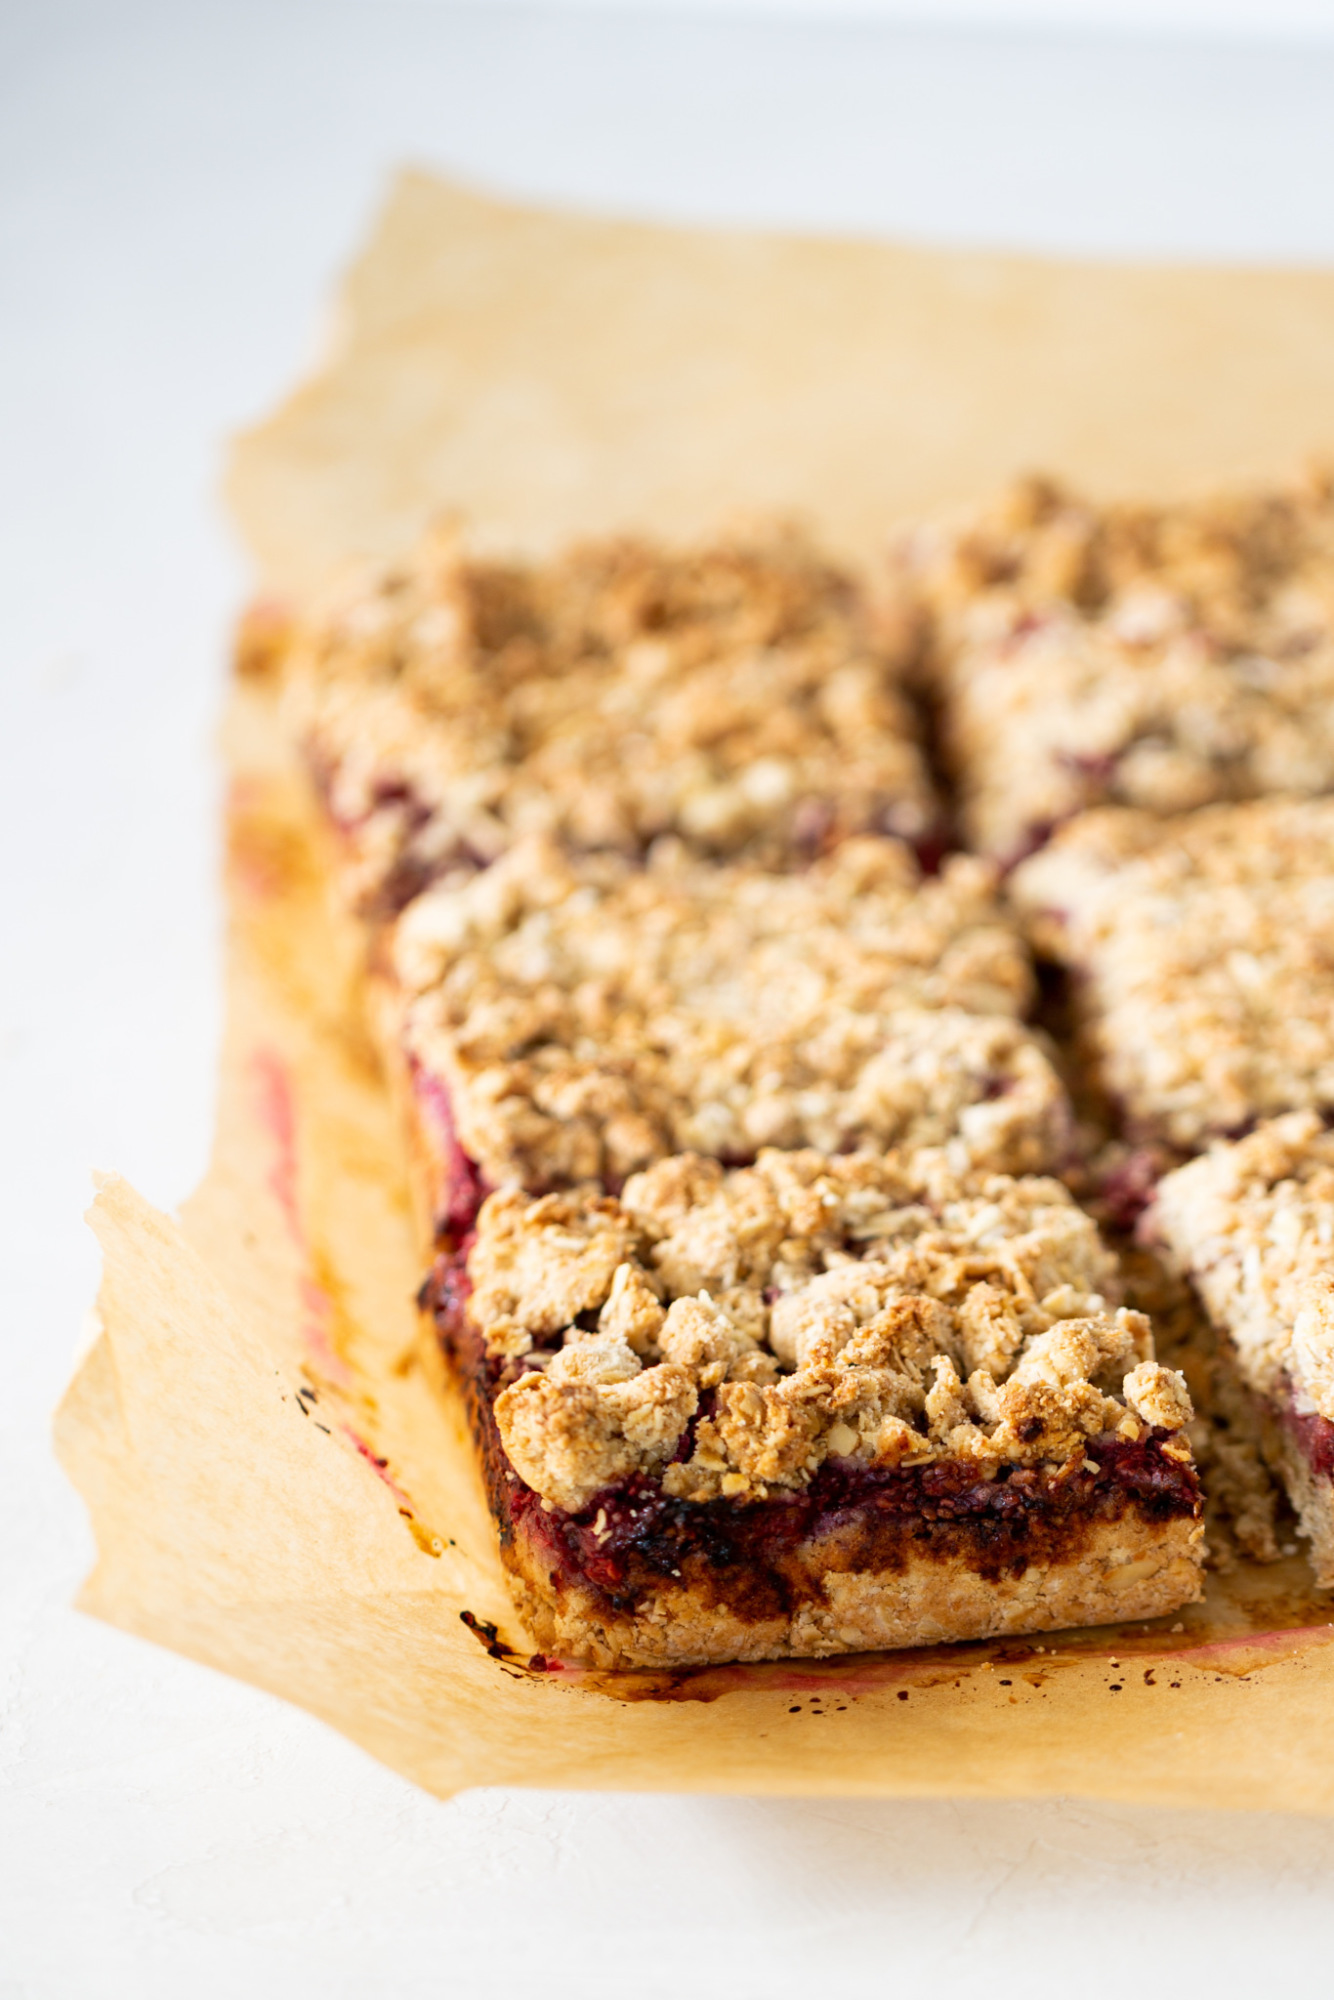 barritas de avena y frambuesa, Oat bars with berry chia jam